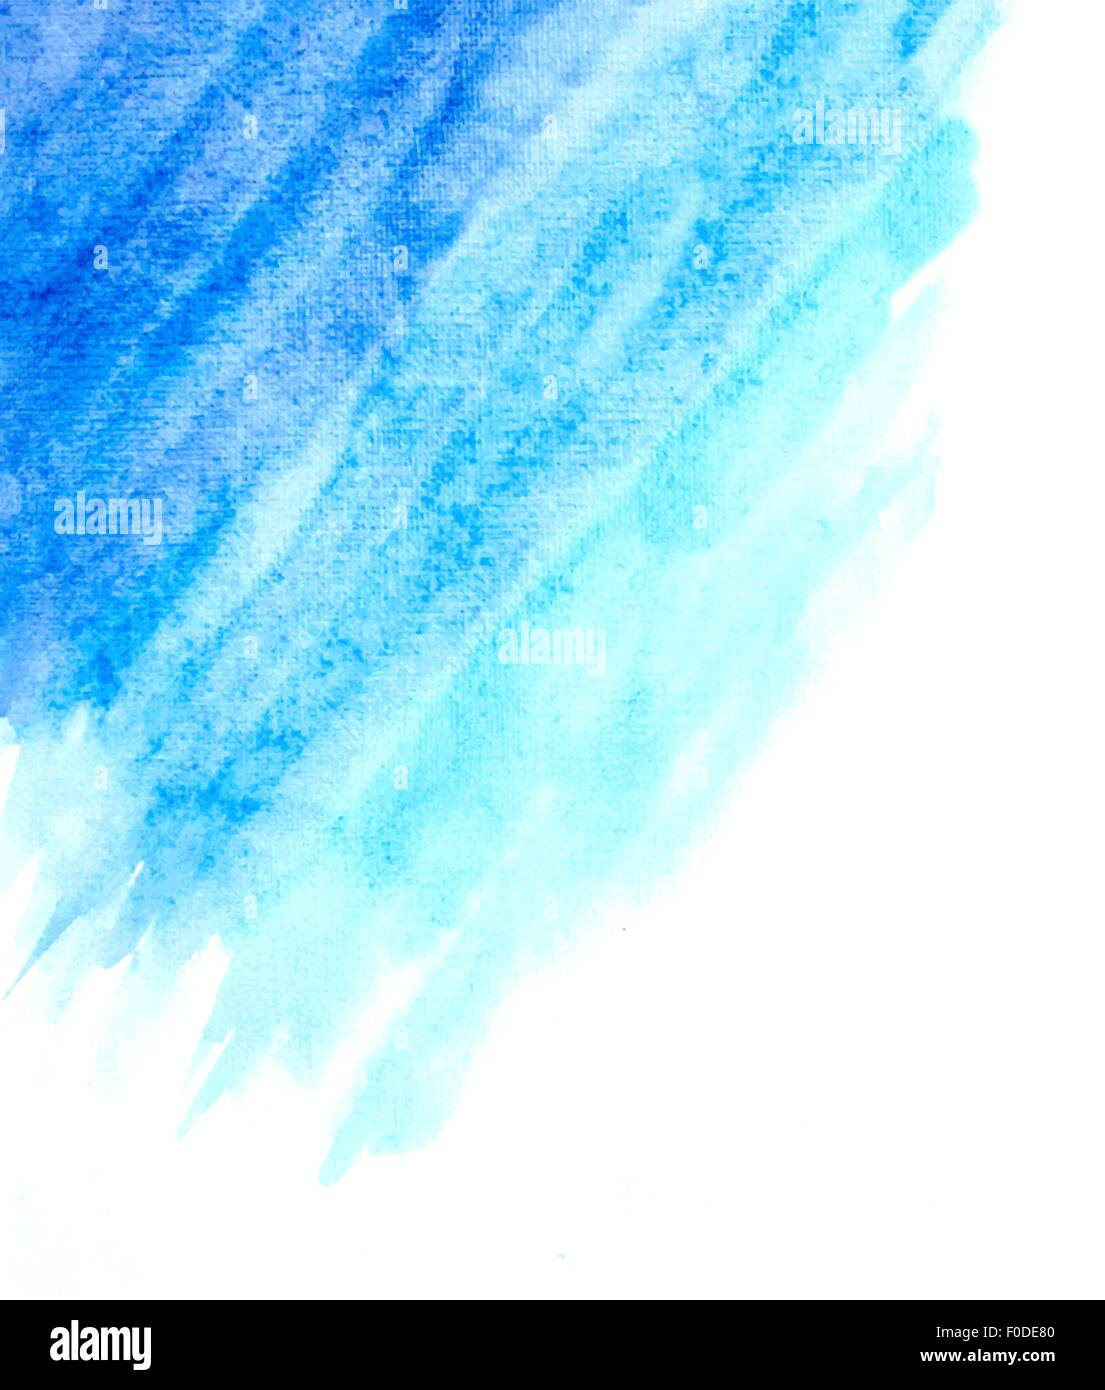 Light Blue Watercolor Abstract Background Vector Stock